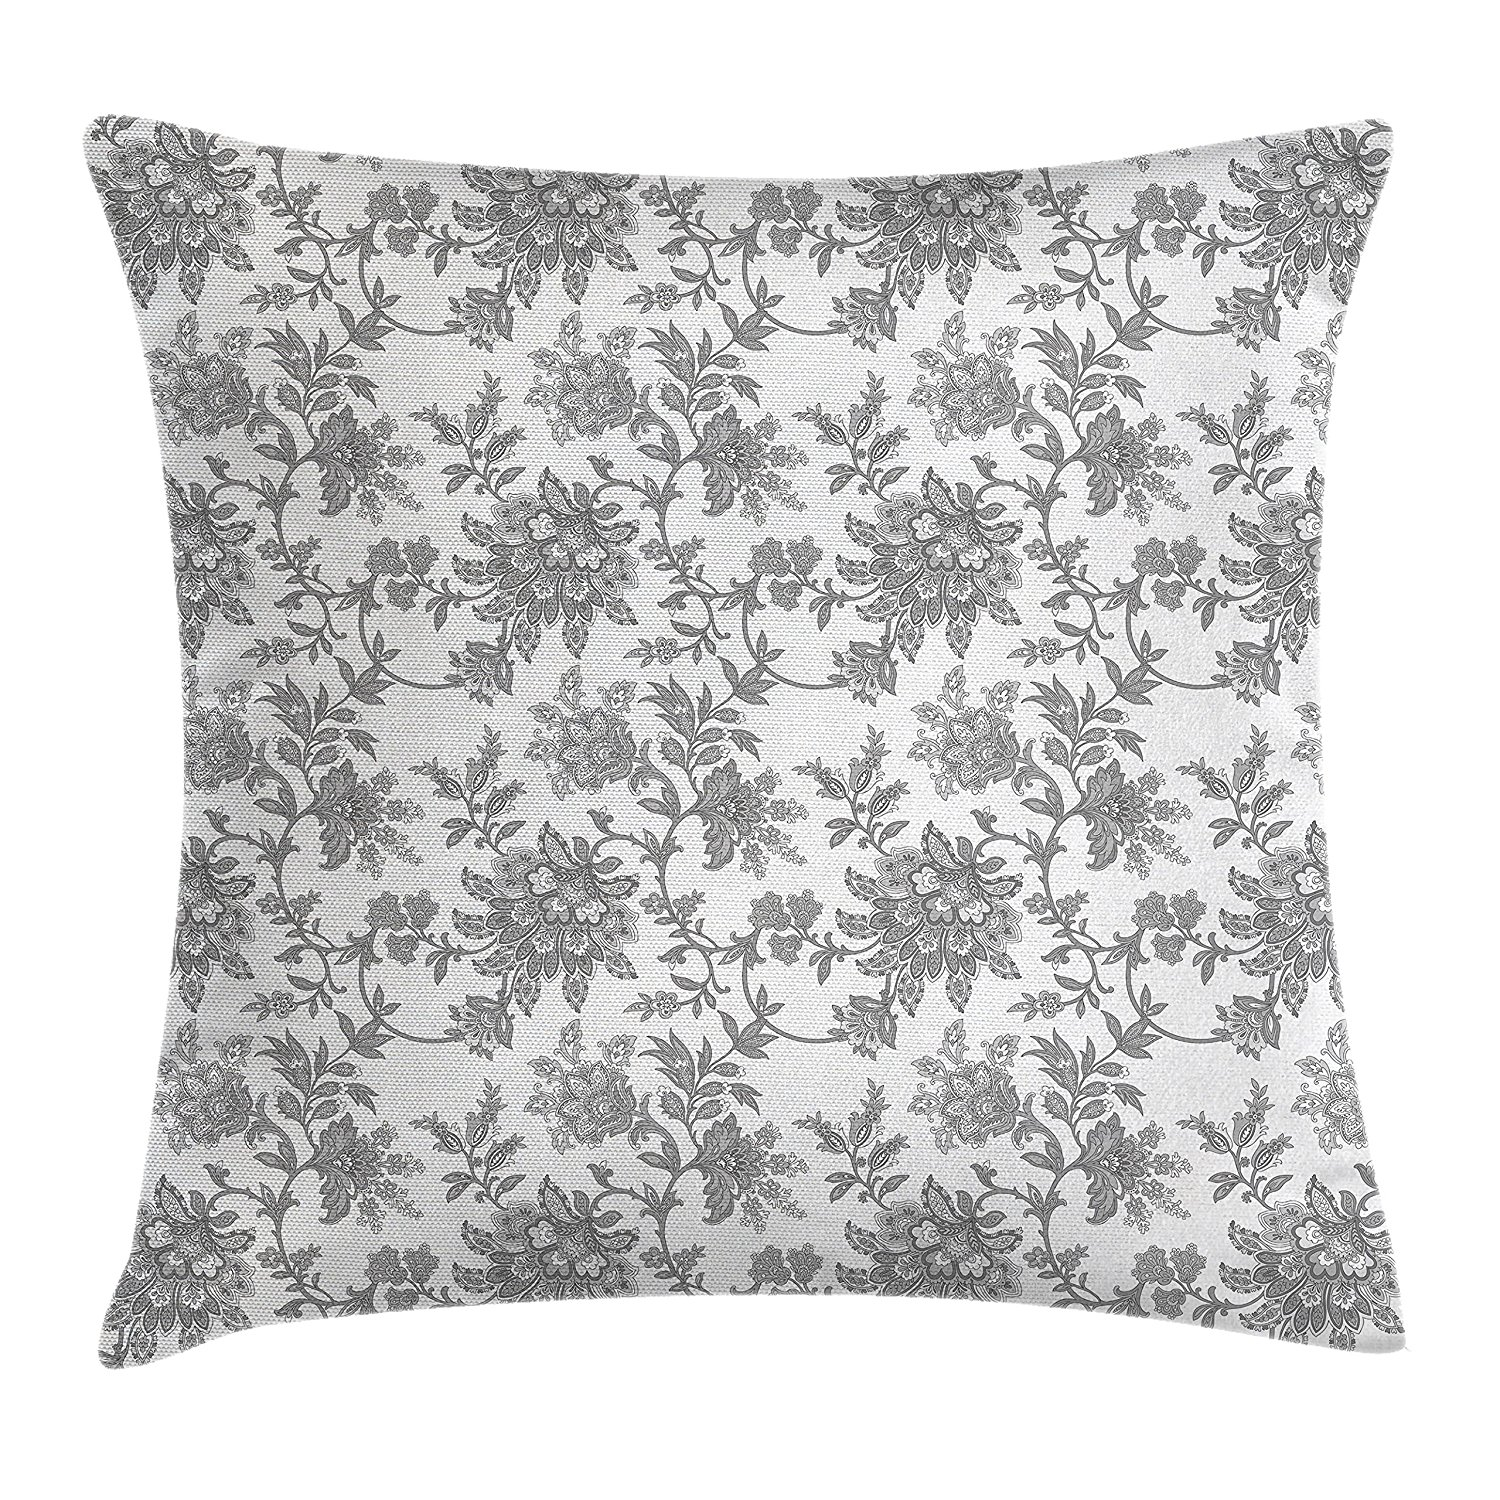 Floral Throw Pillow Cushion Cover by Ambesonne, Monochrome Ethnic Petals Asian Traditional Nature Influences Essence Artwork Print, Decorative Square Accent Pillow Case, 18 X18 Inches, Dimgray